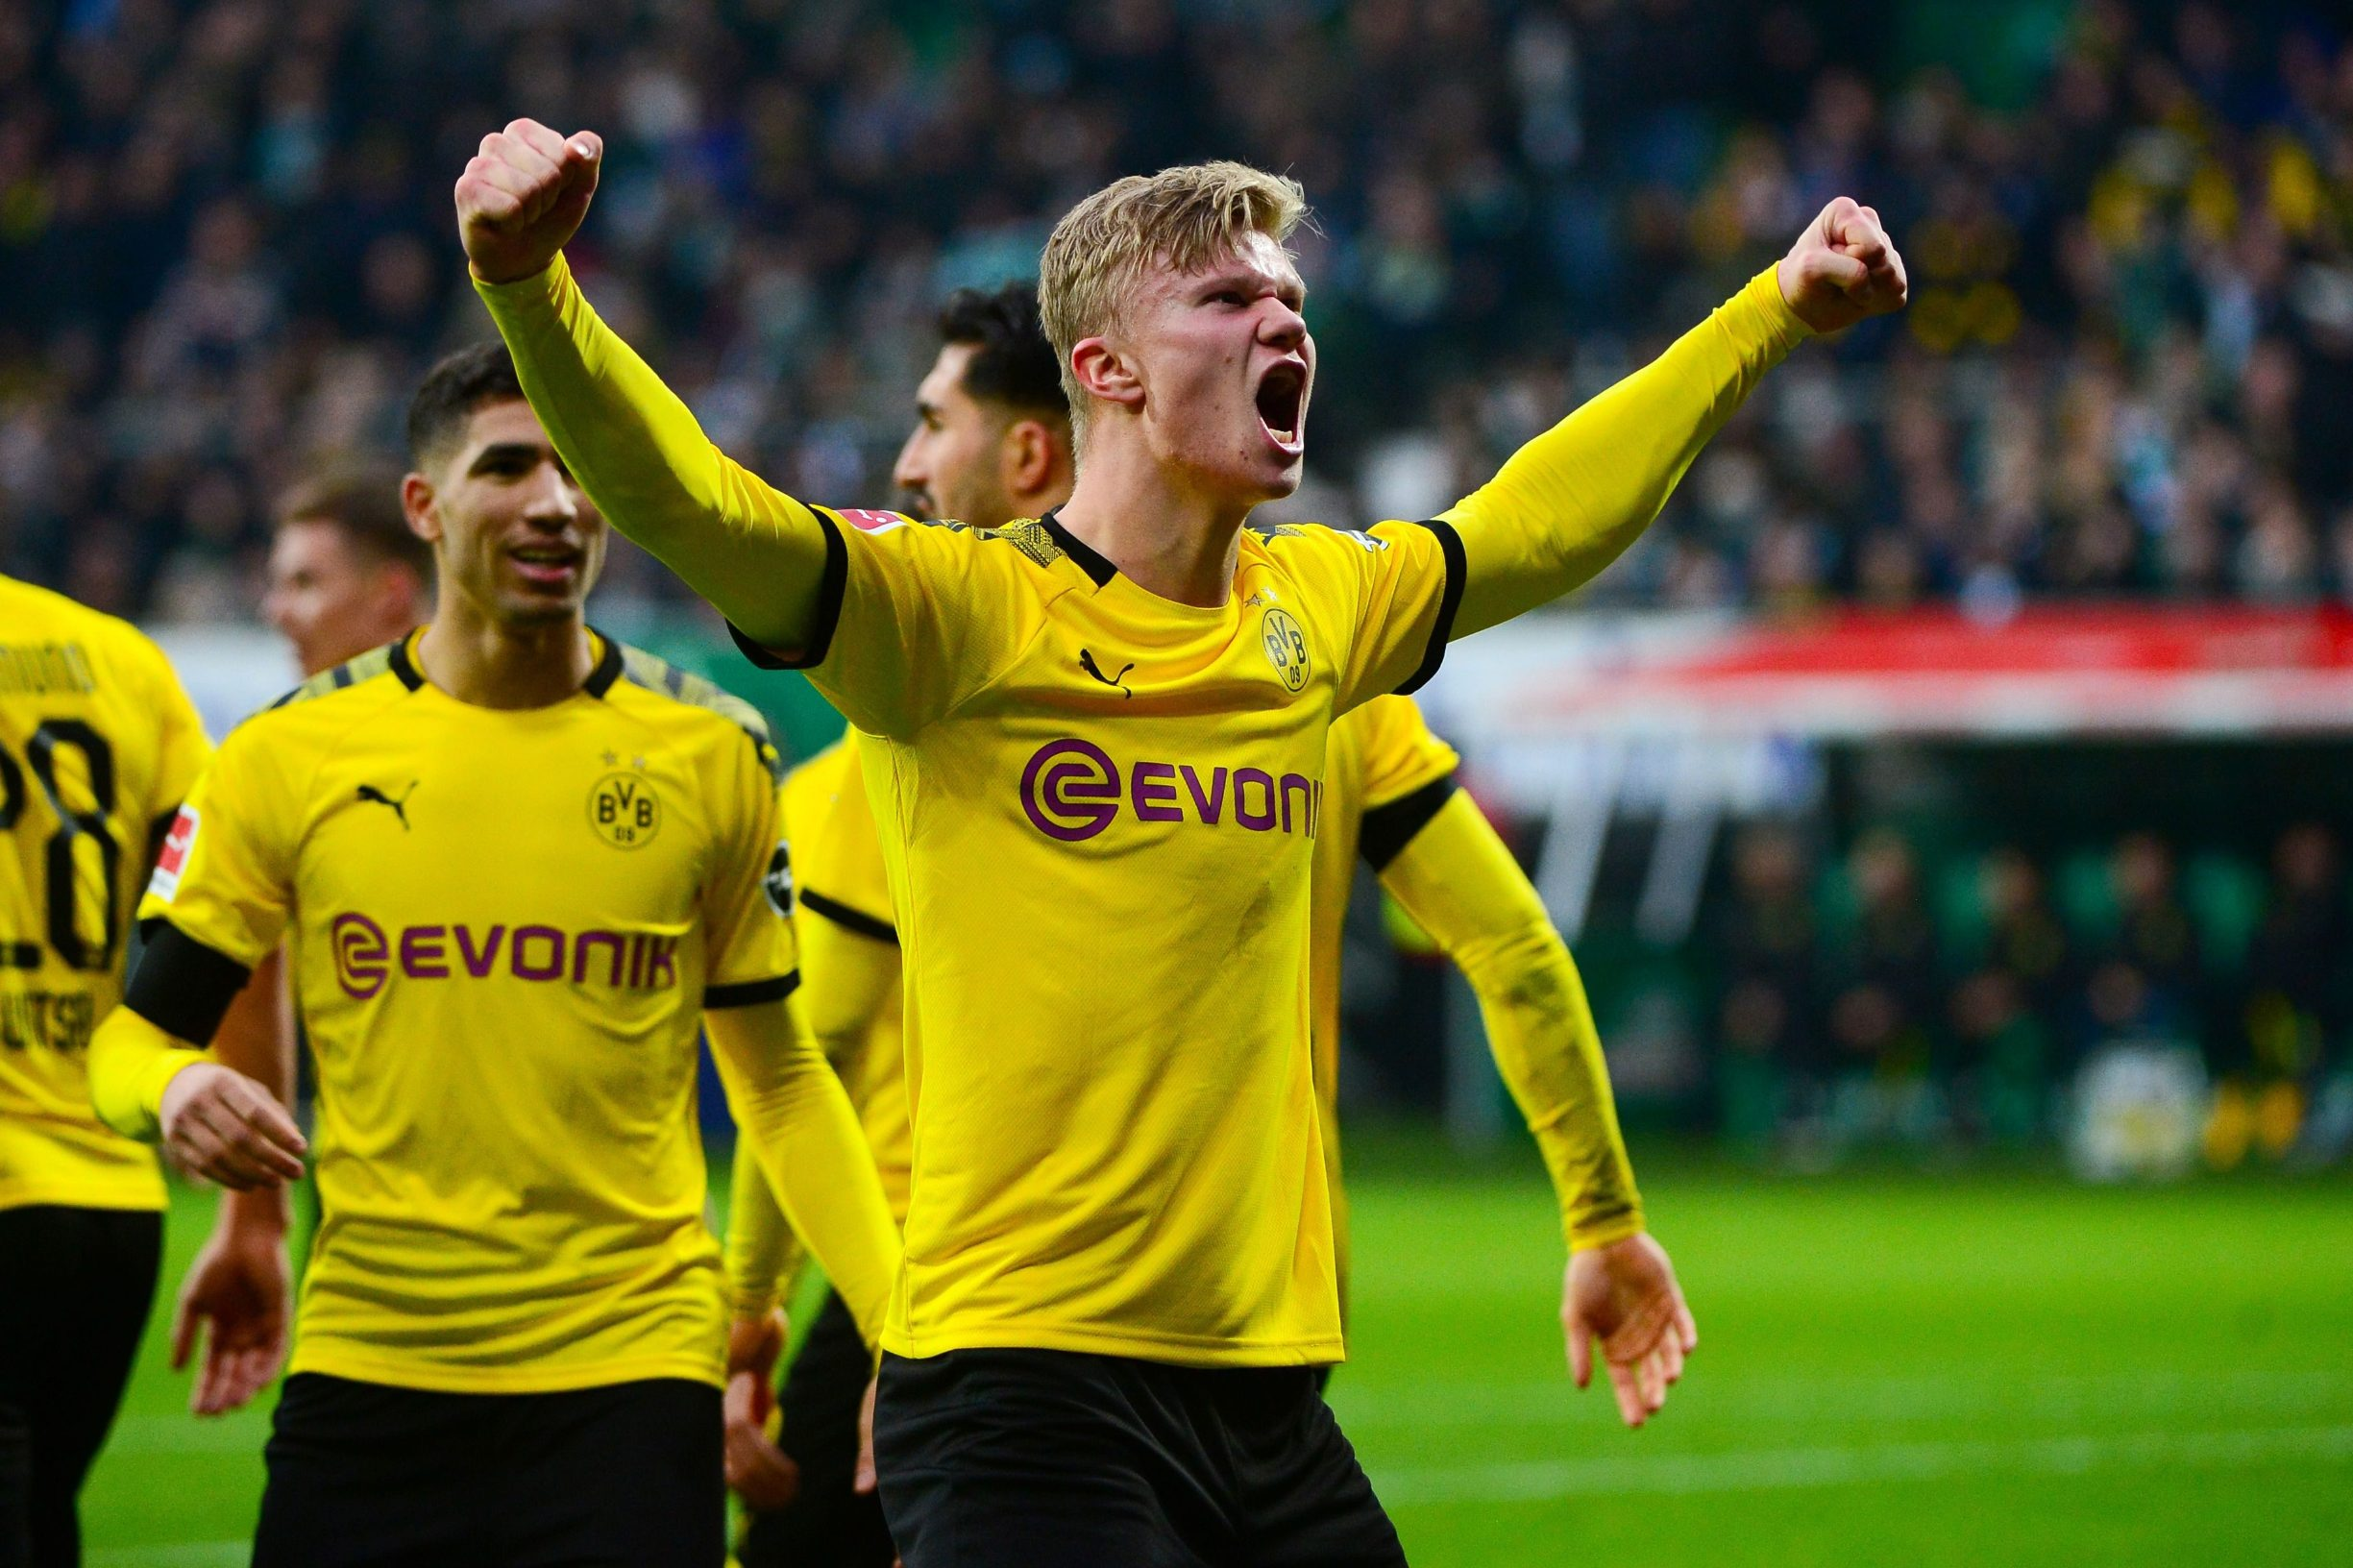 Dortmund's Norwegian forward Erling Braut Haaland celebrates after scoring during the German first division Bundesliga football match Werder Bremen vs BVB Borussia Dortmund, in Bremen, northern Germany on February 22, 2020. (Photo by Patrik Stollarz / AFP) / DFL REGULATIONS PROHIBIT ANY USE OF PHOTOGRAPHS AS IMAGE SEQUENCES AND/OR QUASI-VIDEO